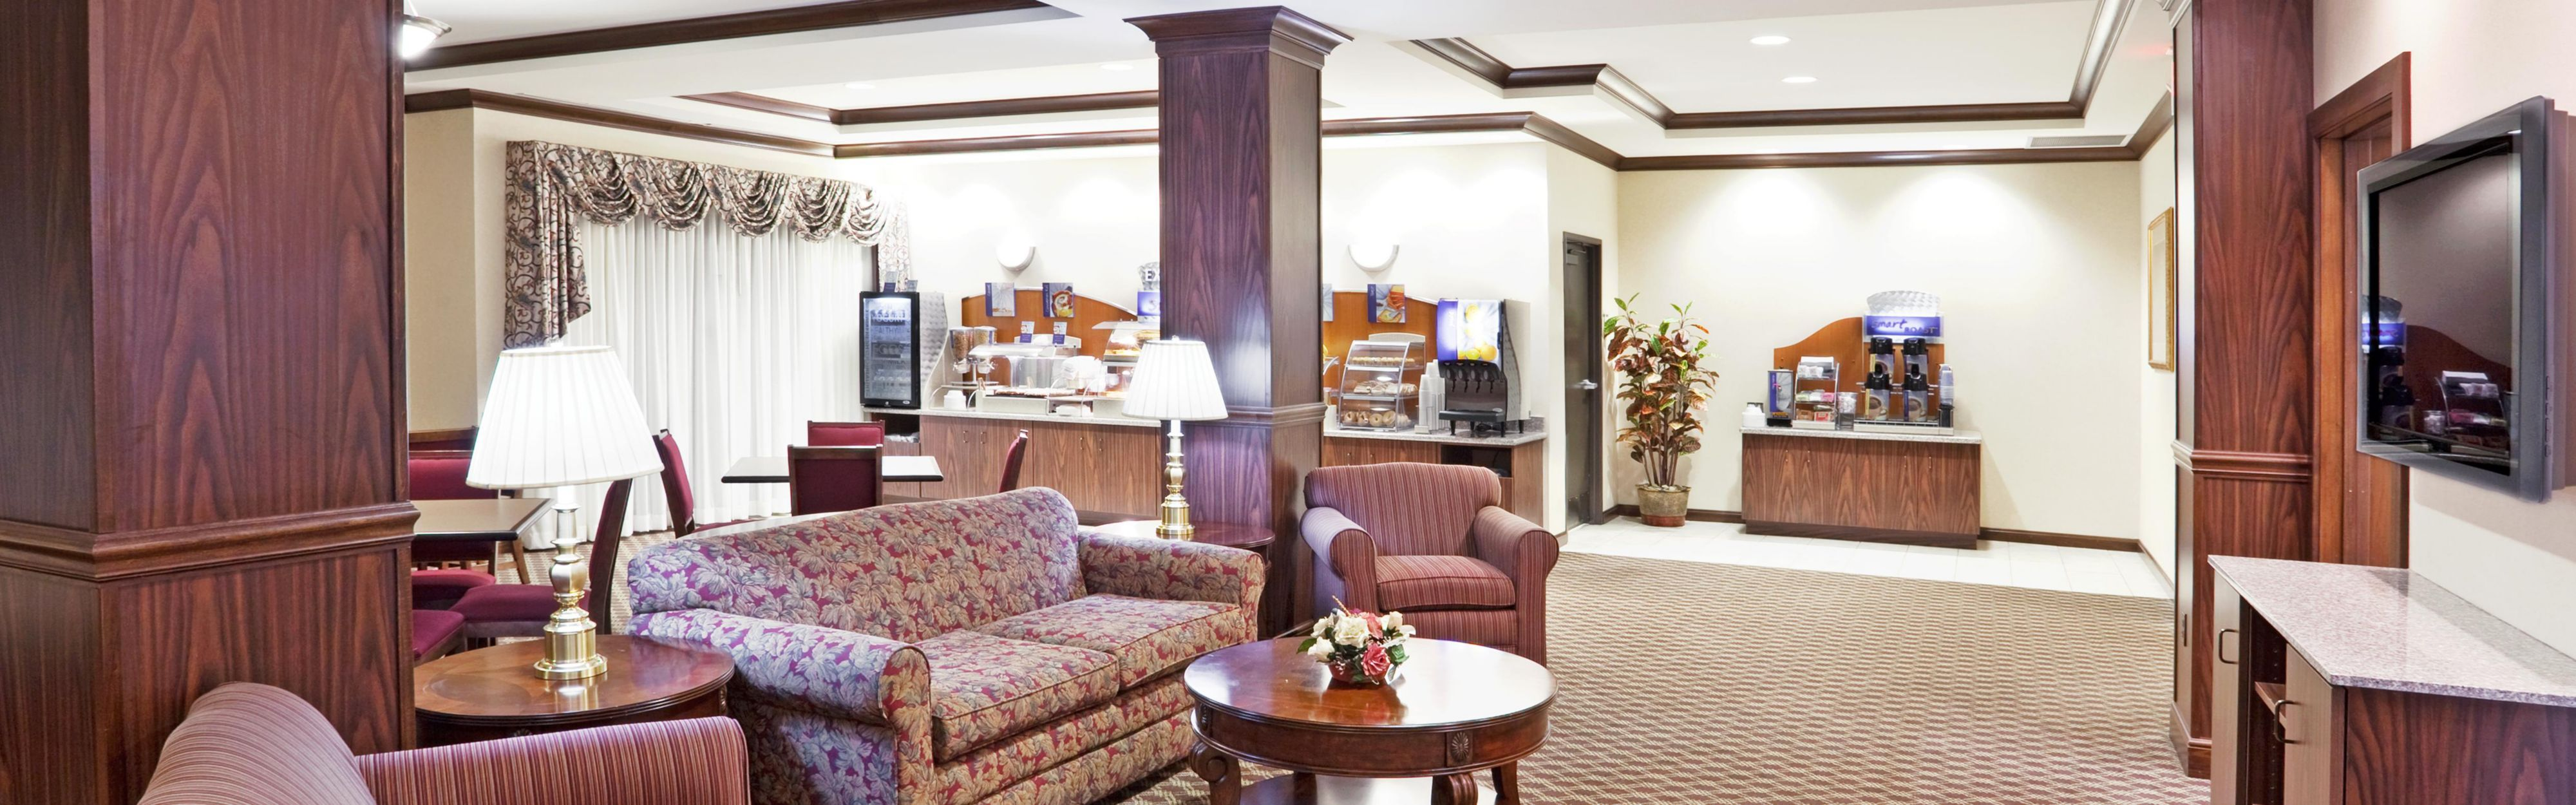 Holiday Inn Express & Suites Franklin - Oil City image 3